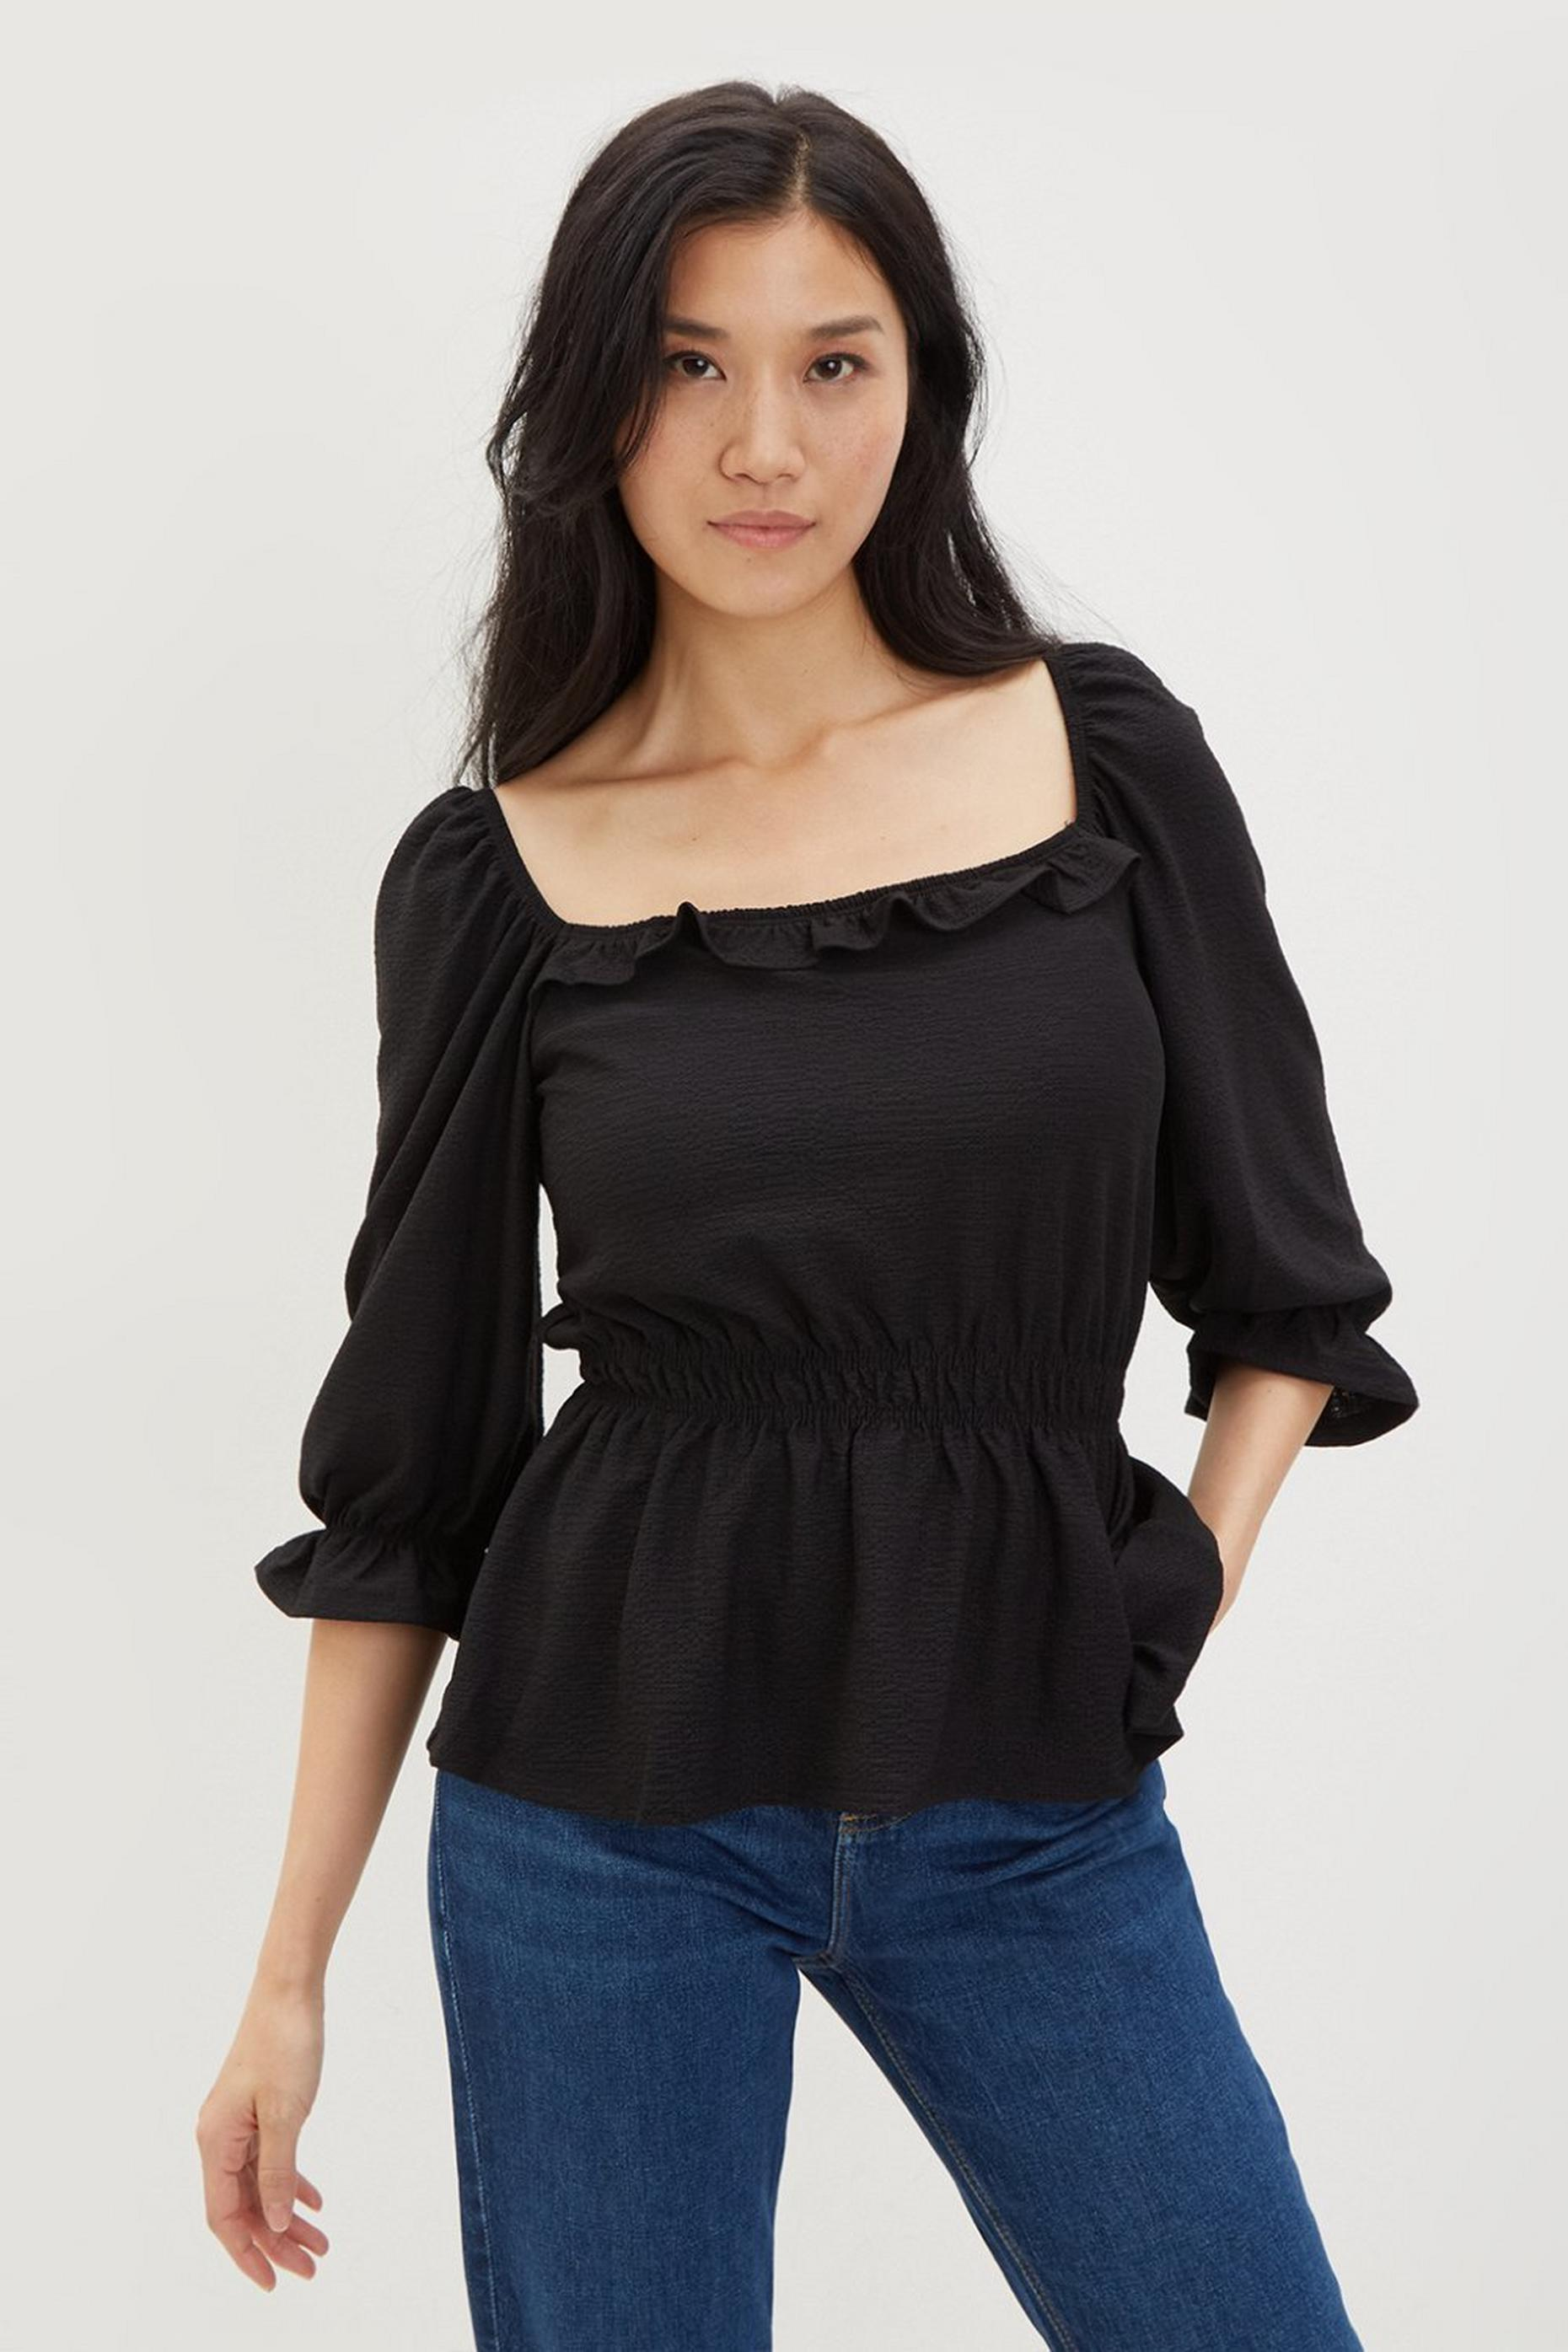 Black Square Neck Textured Top